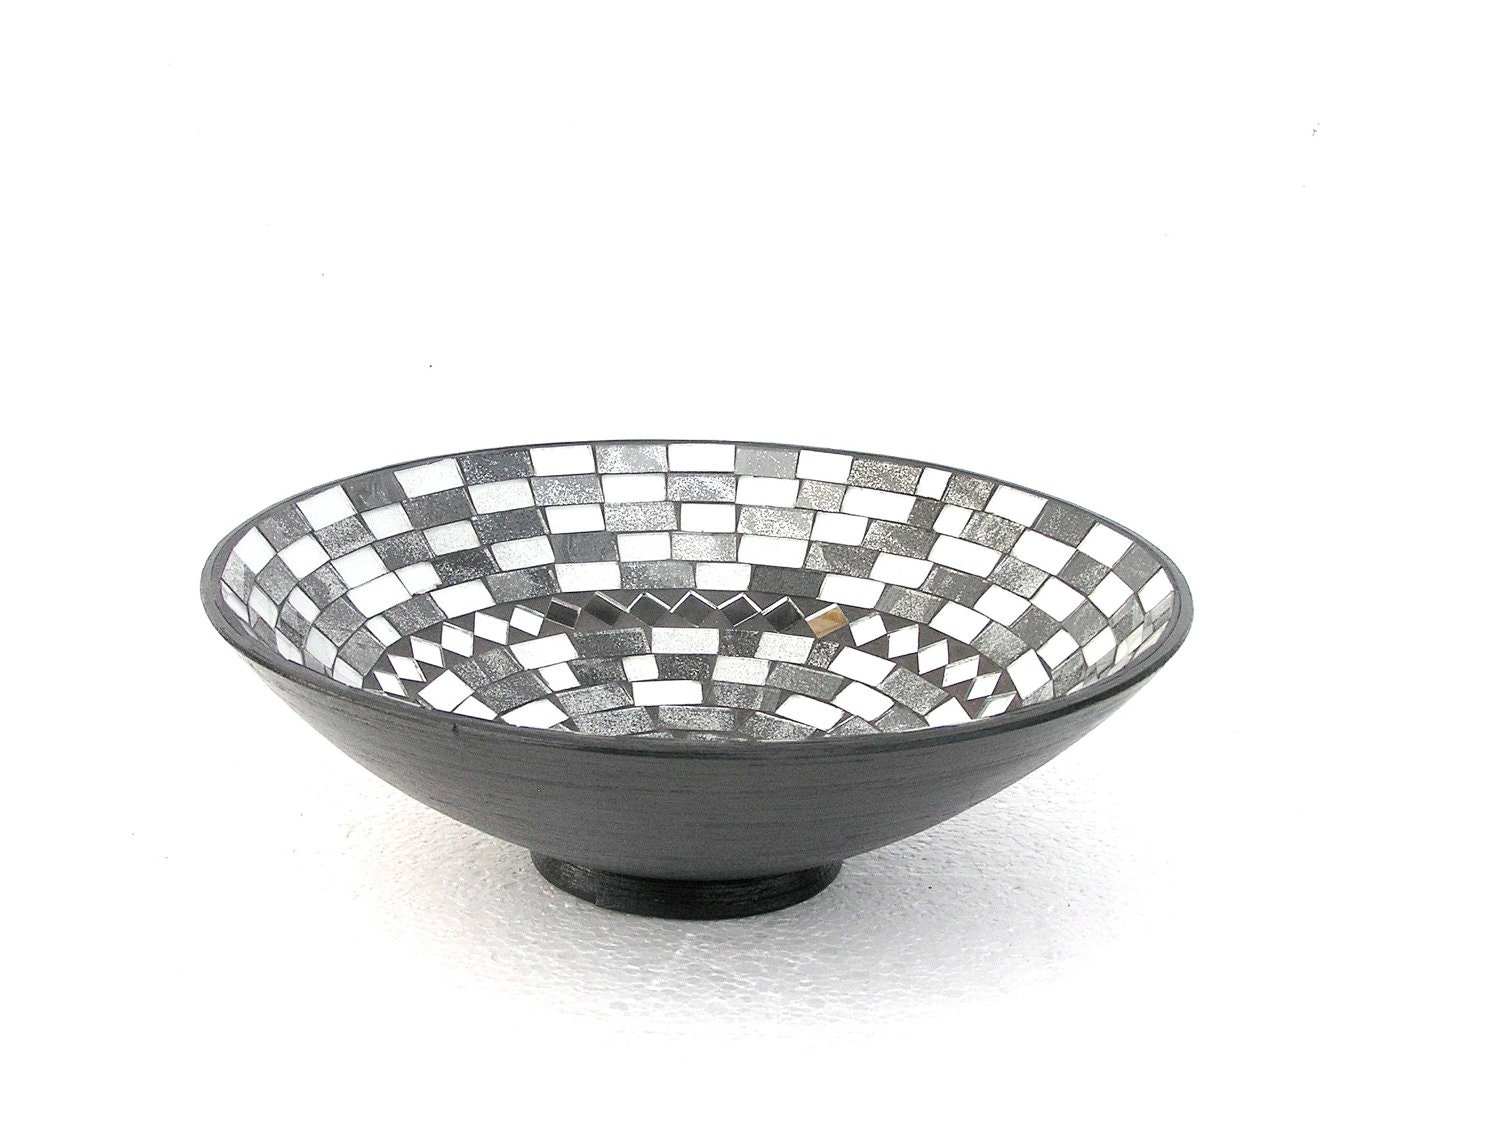 Black and white fruit bowl mosaic modern home decor classical contrast - SirliMosaic